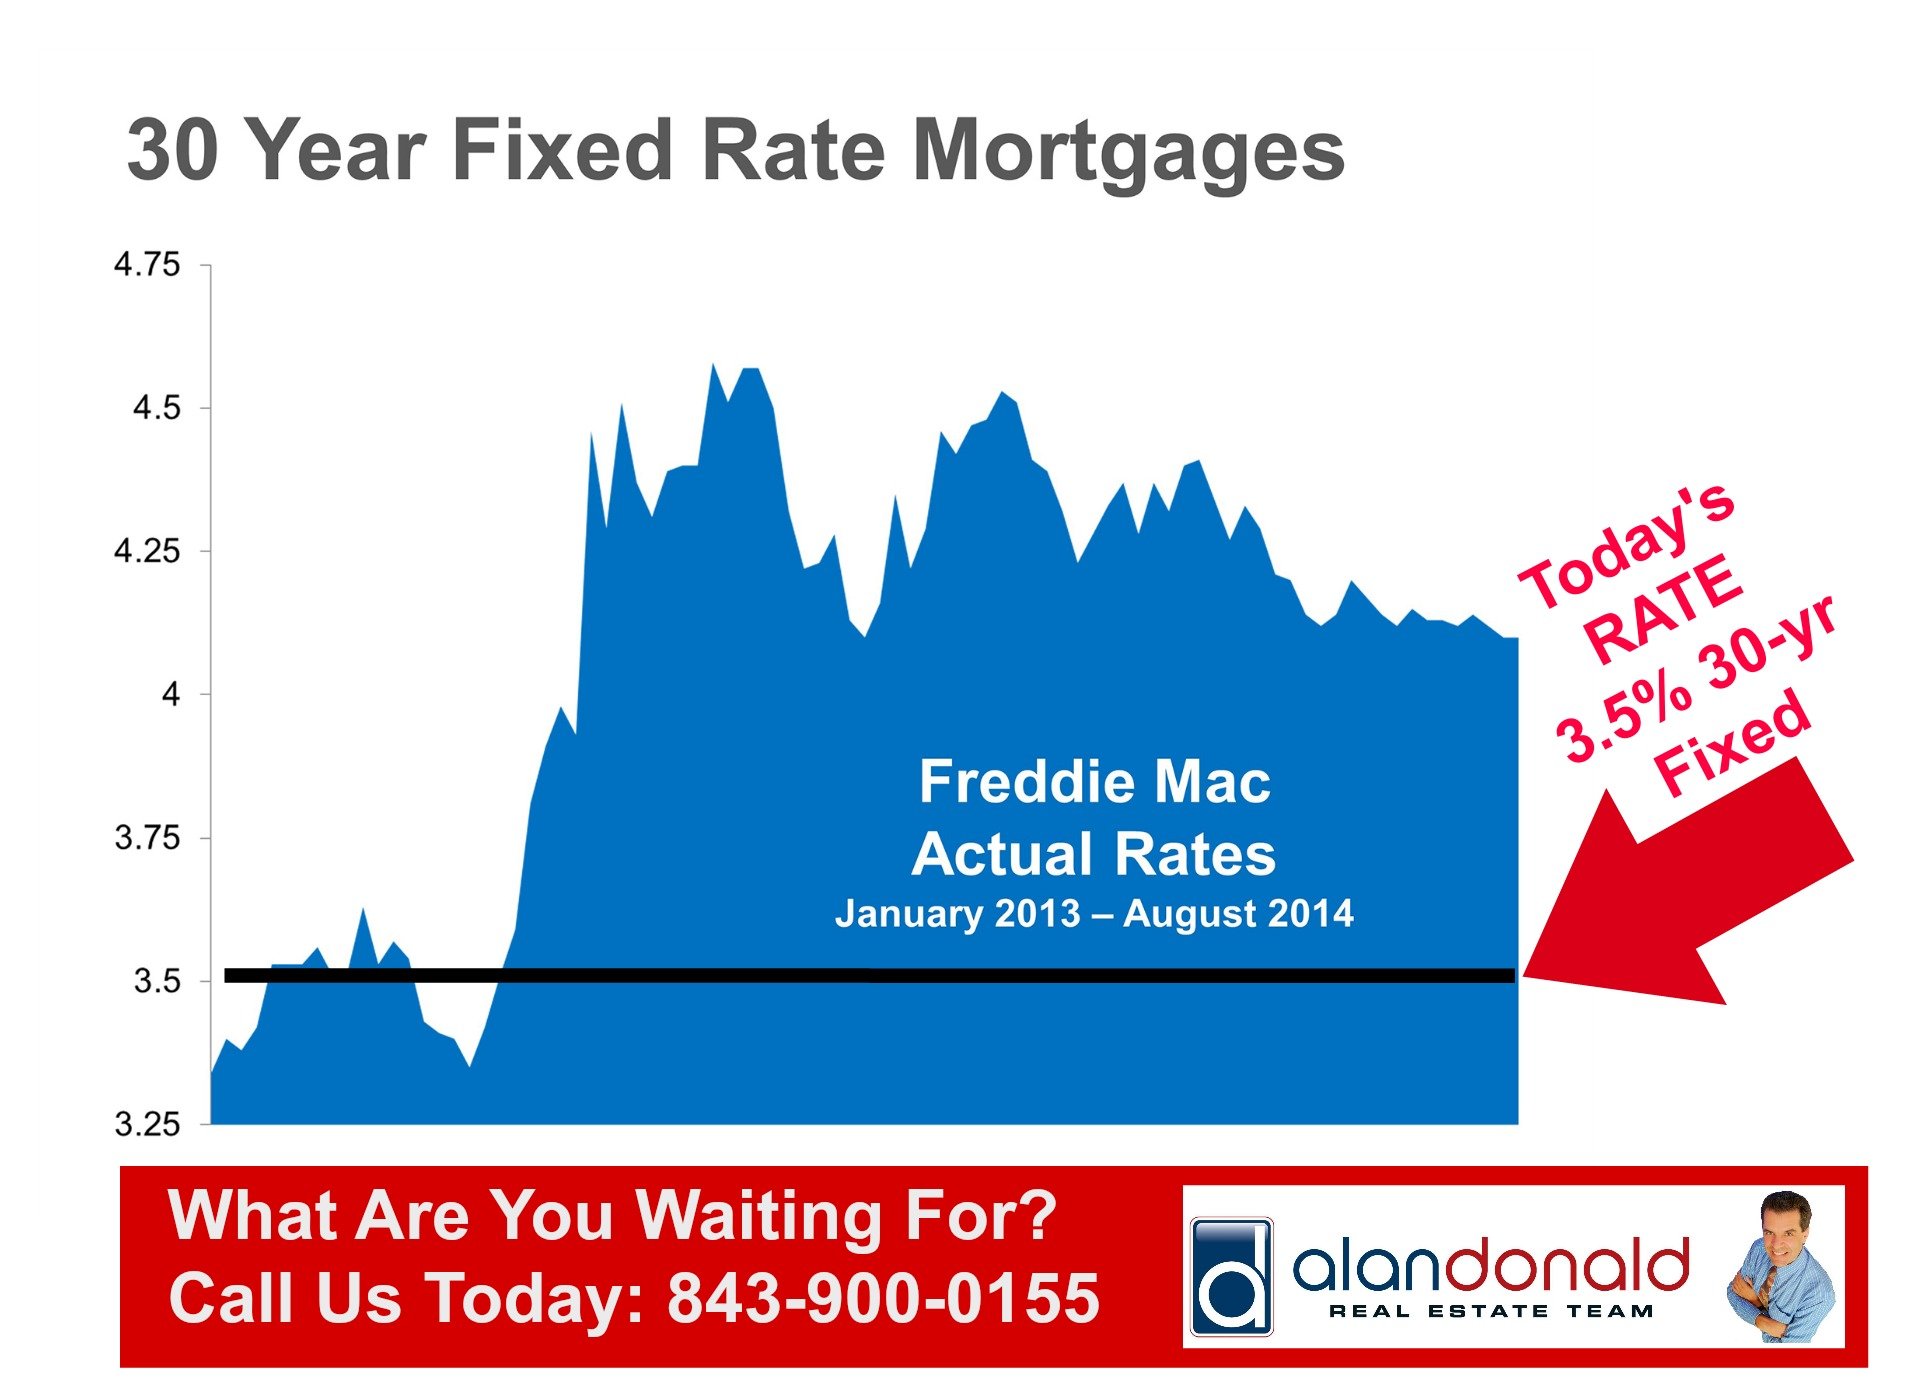 Low mortgage interest rates make housing more affordable